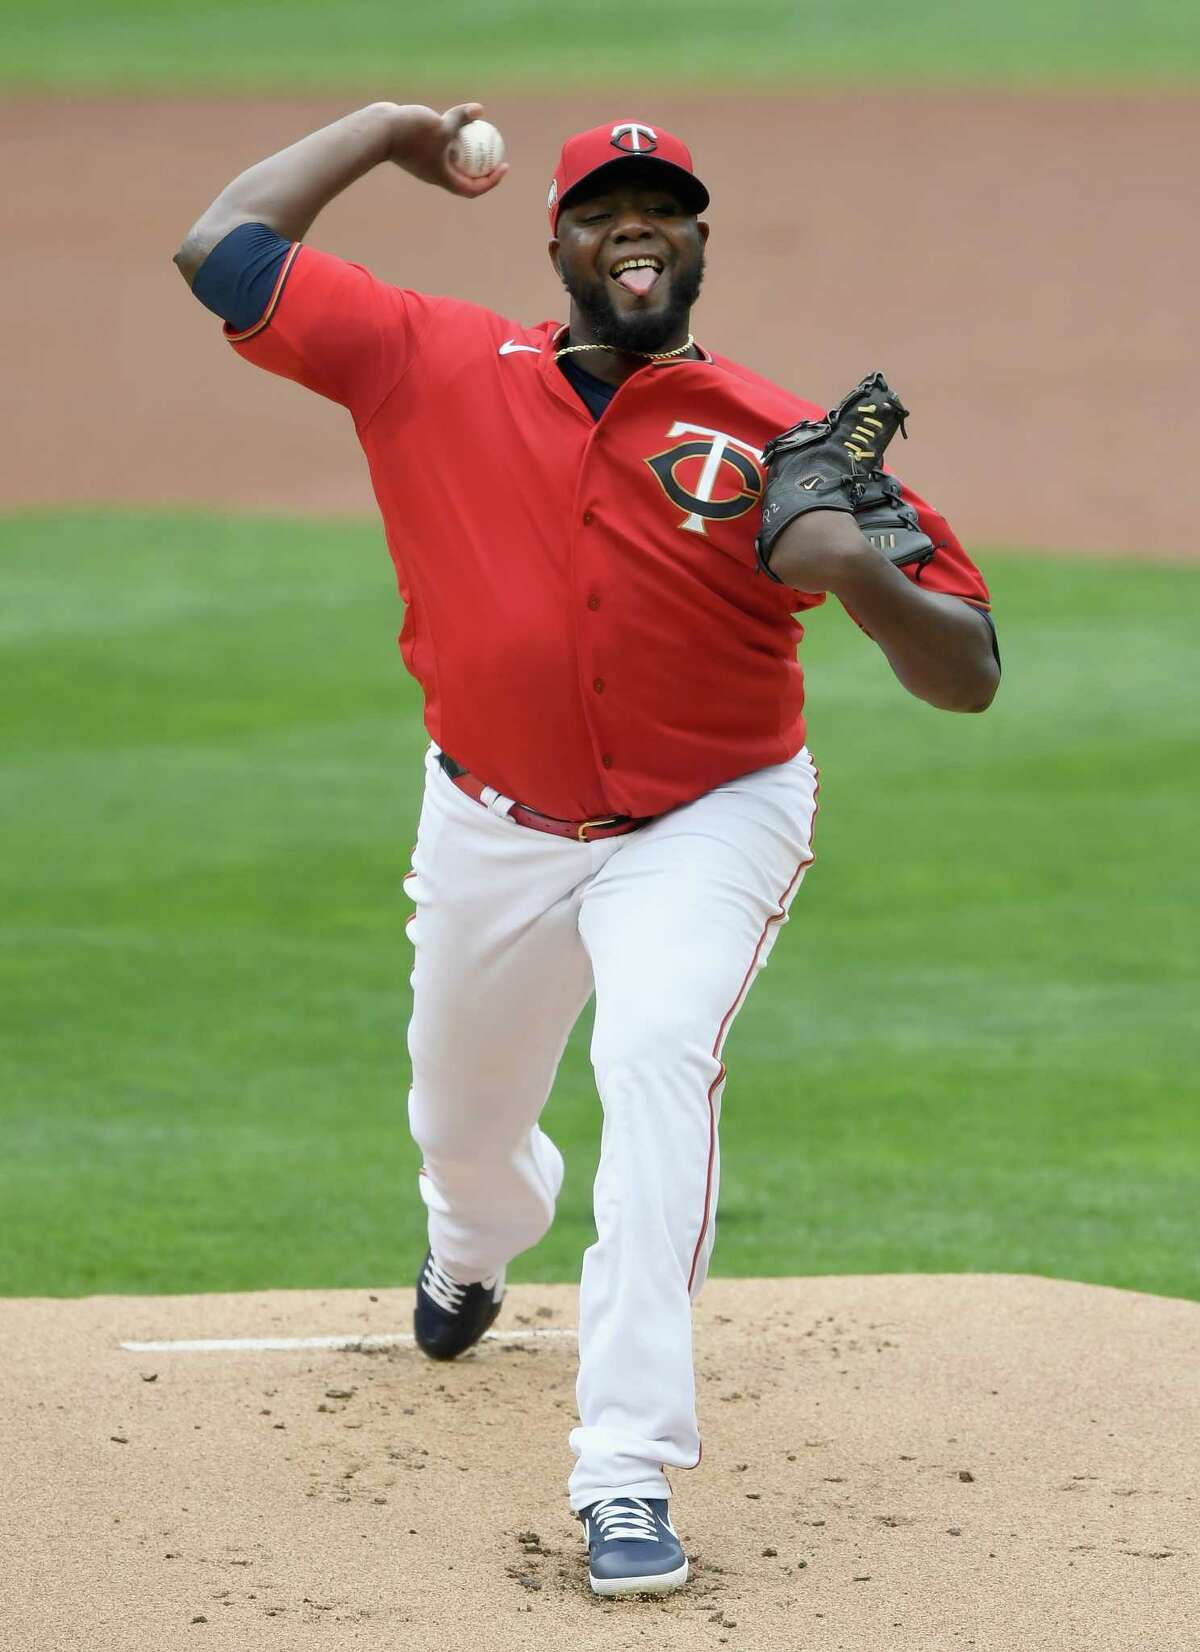 MINNEAPOLIS, MINNESOTA - SEPTEMBER 07: Michael Pineda #35 of the Minnesota Twins delivers a pitch against the Detroit Tigers during the first inning of the game at Target Field on September 7, 2020 in Minneapolis, Minnesota. (Photo by Hannah Foslien/Getty Images)